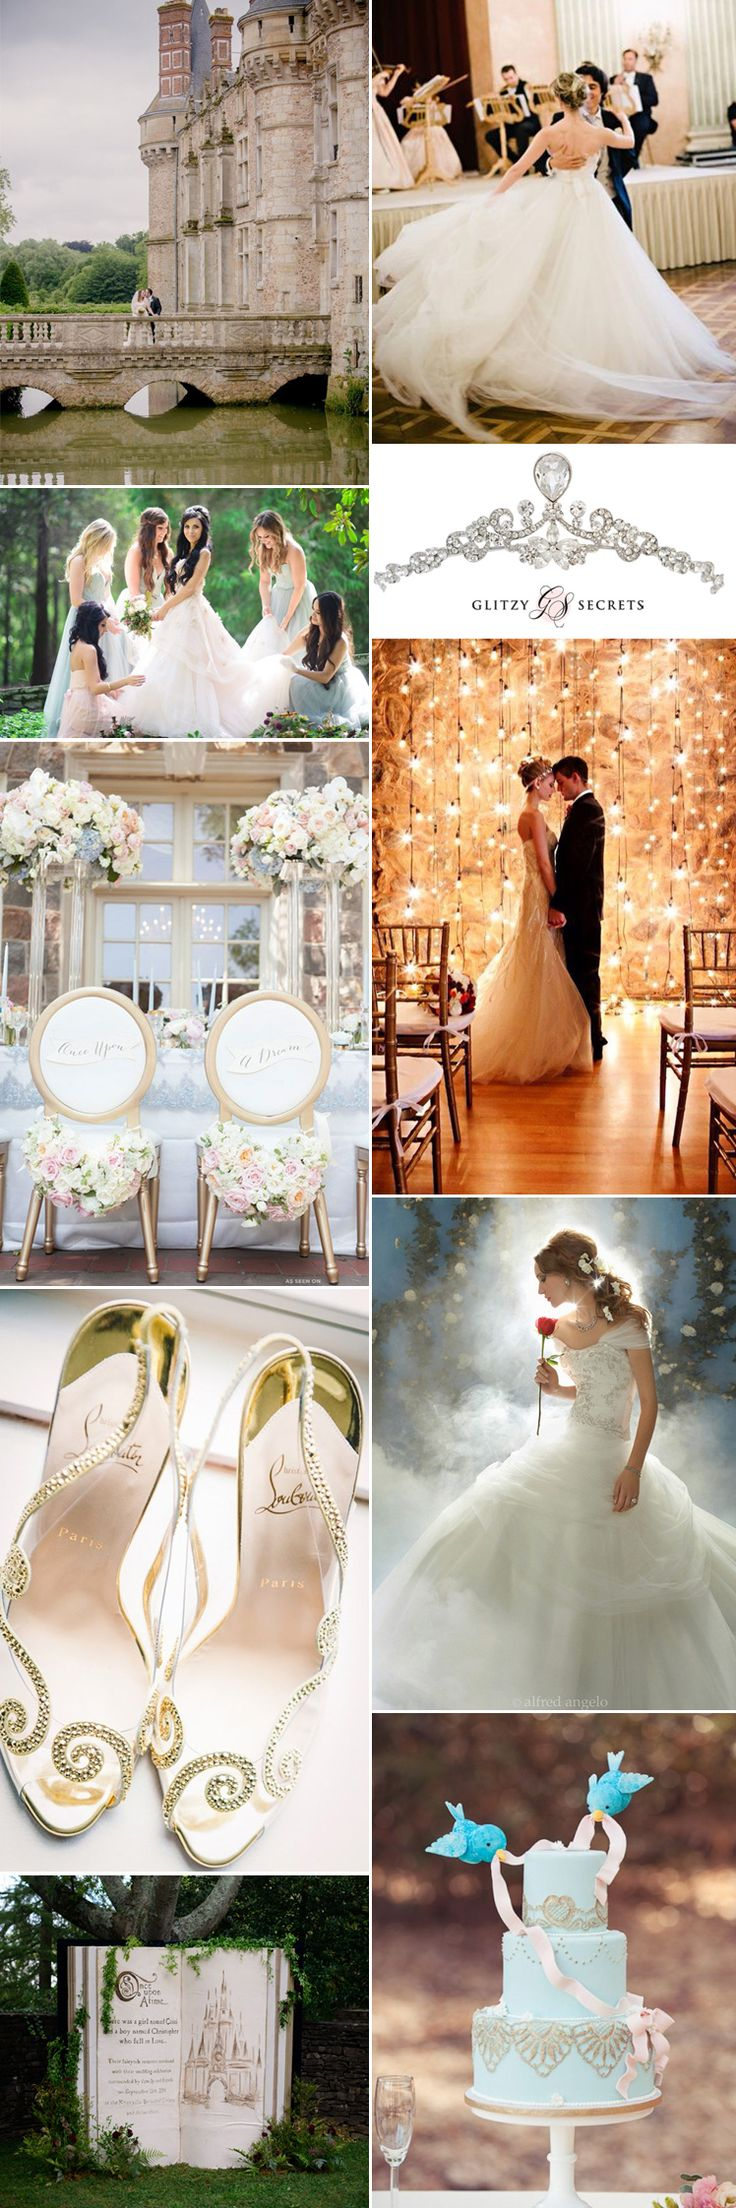 Beautiful Fairytale Wedding Ideas